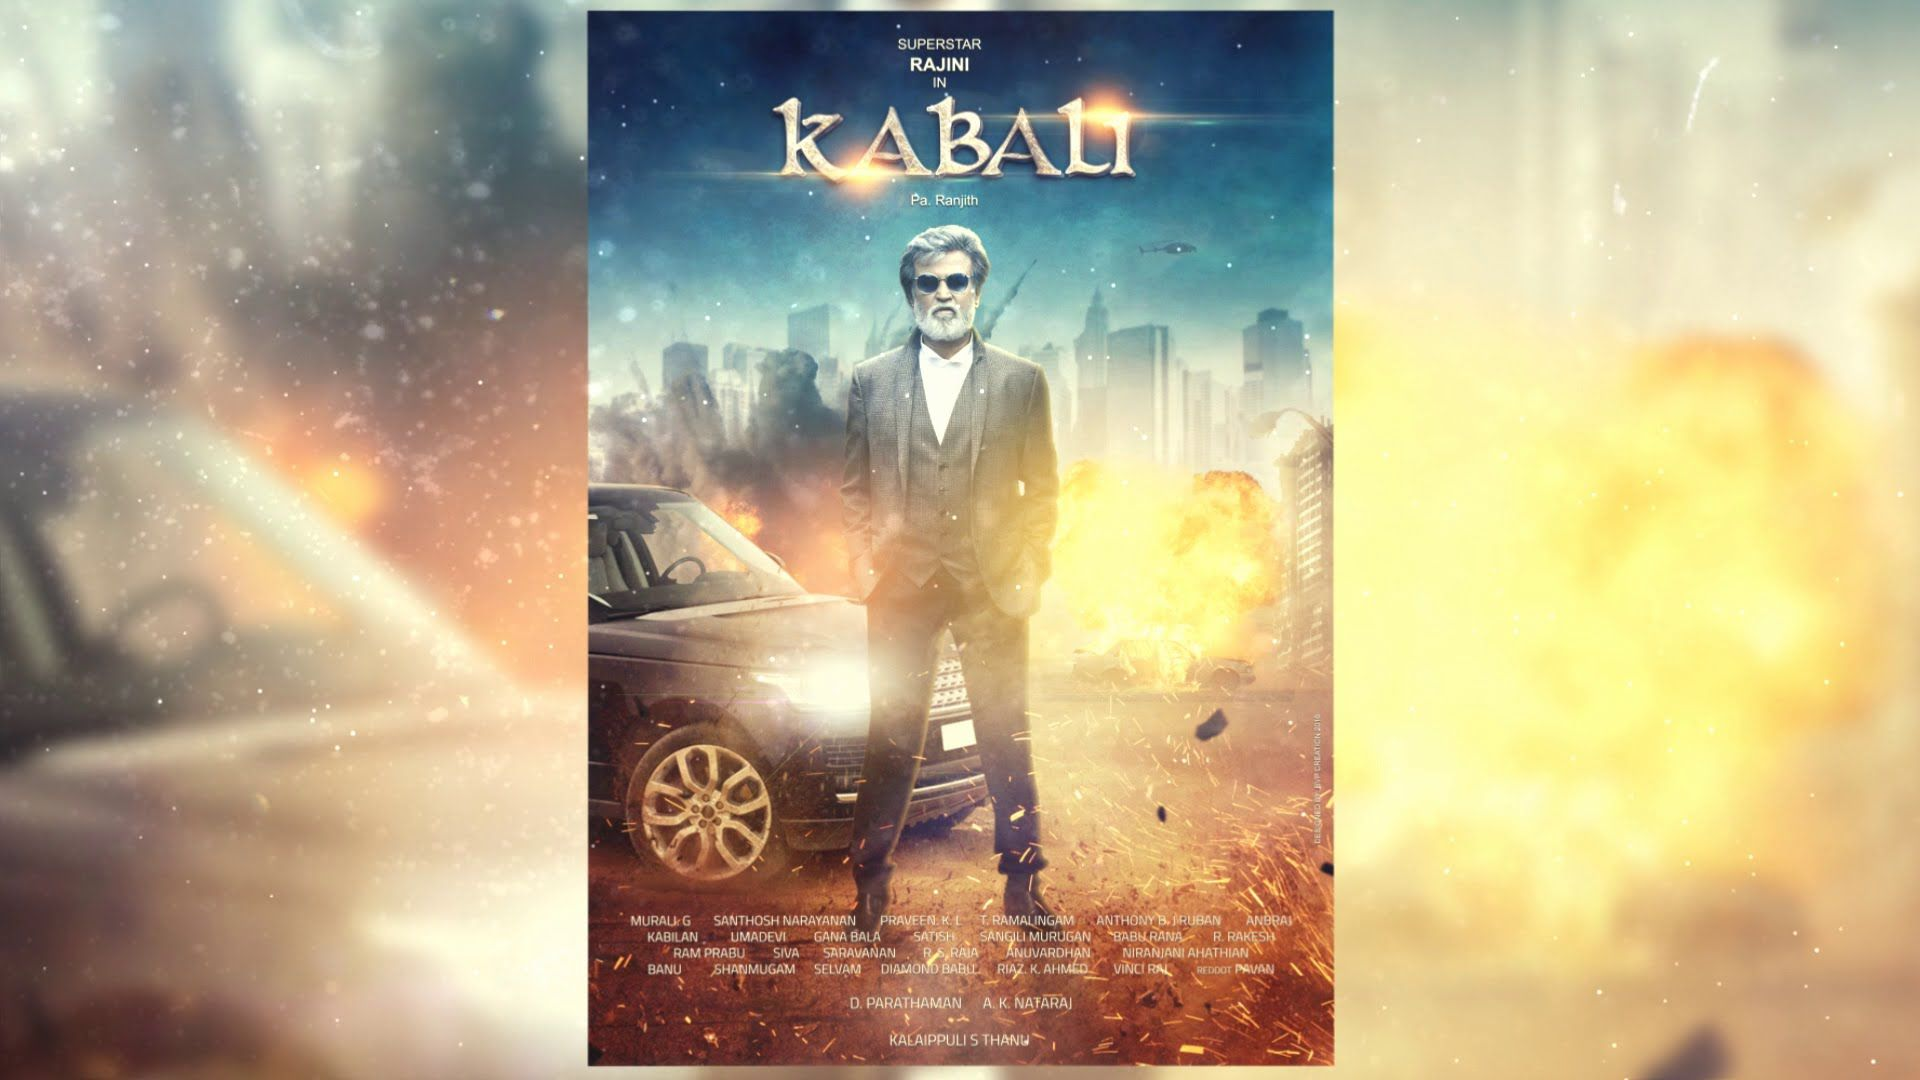 Kabali Movie Poster Speedart уроки по фотошопу Pinterest